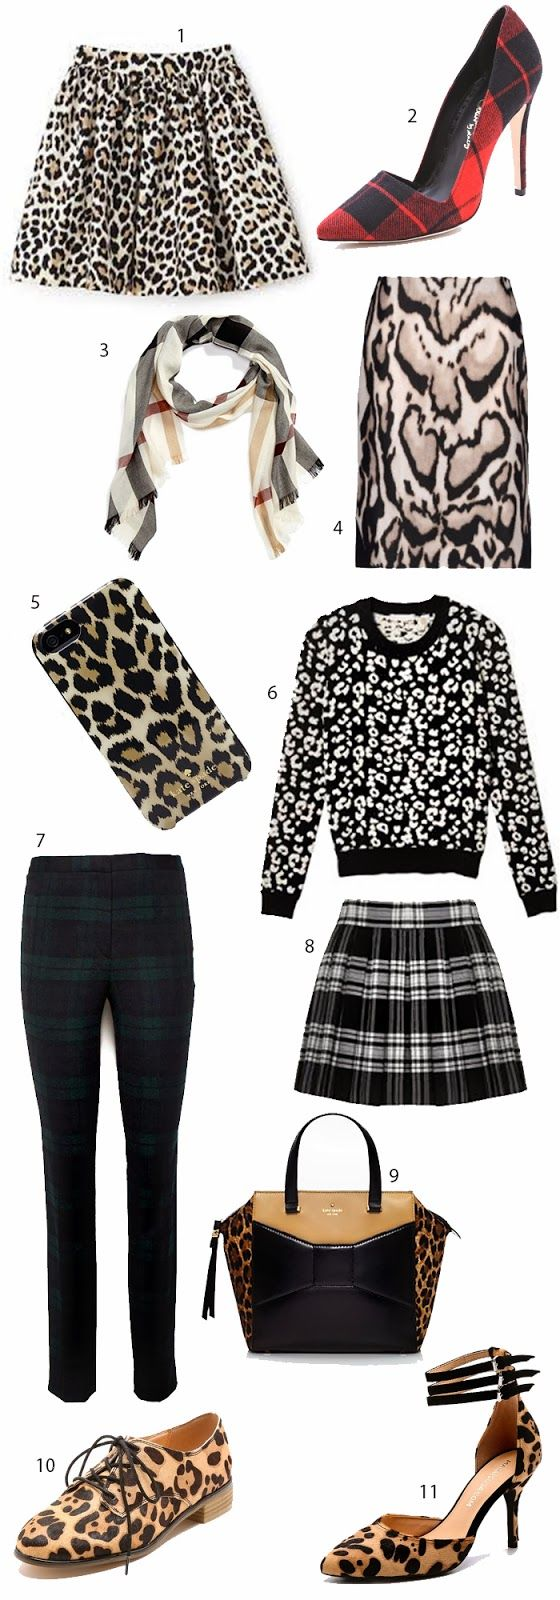 Darling Desires: Plaid and Leopard